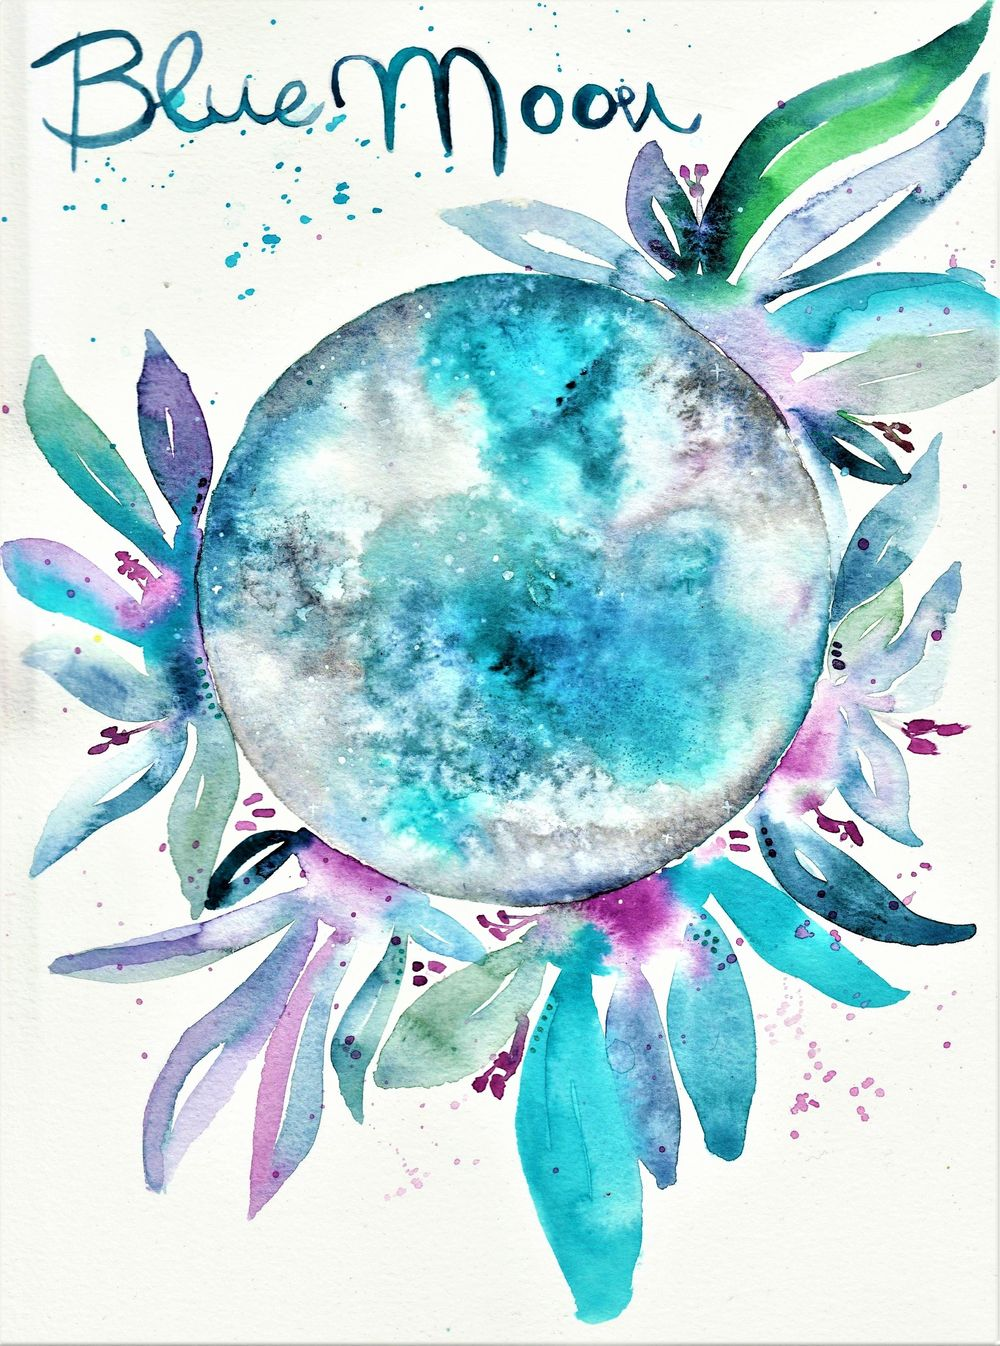 Blue Moon - image 1 - student project